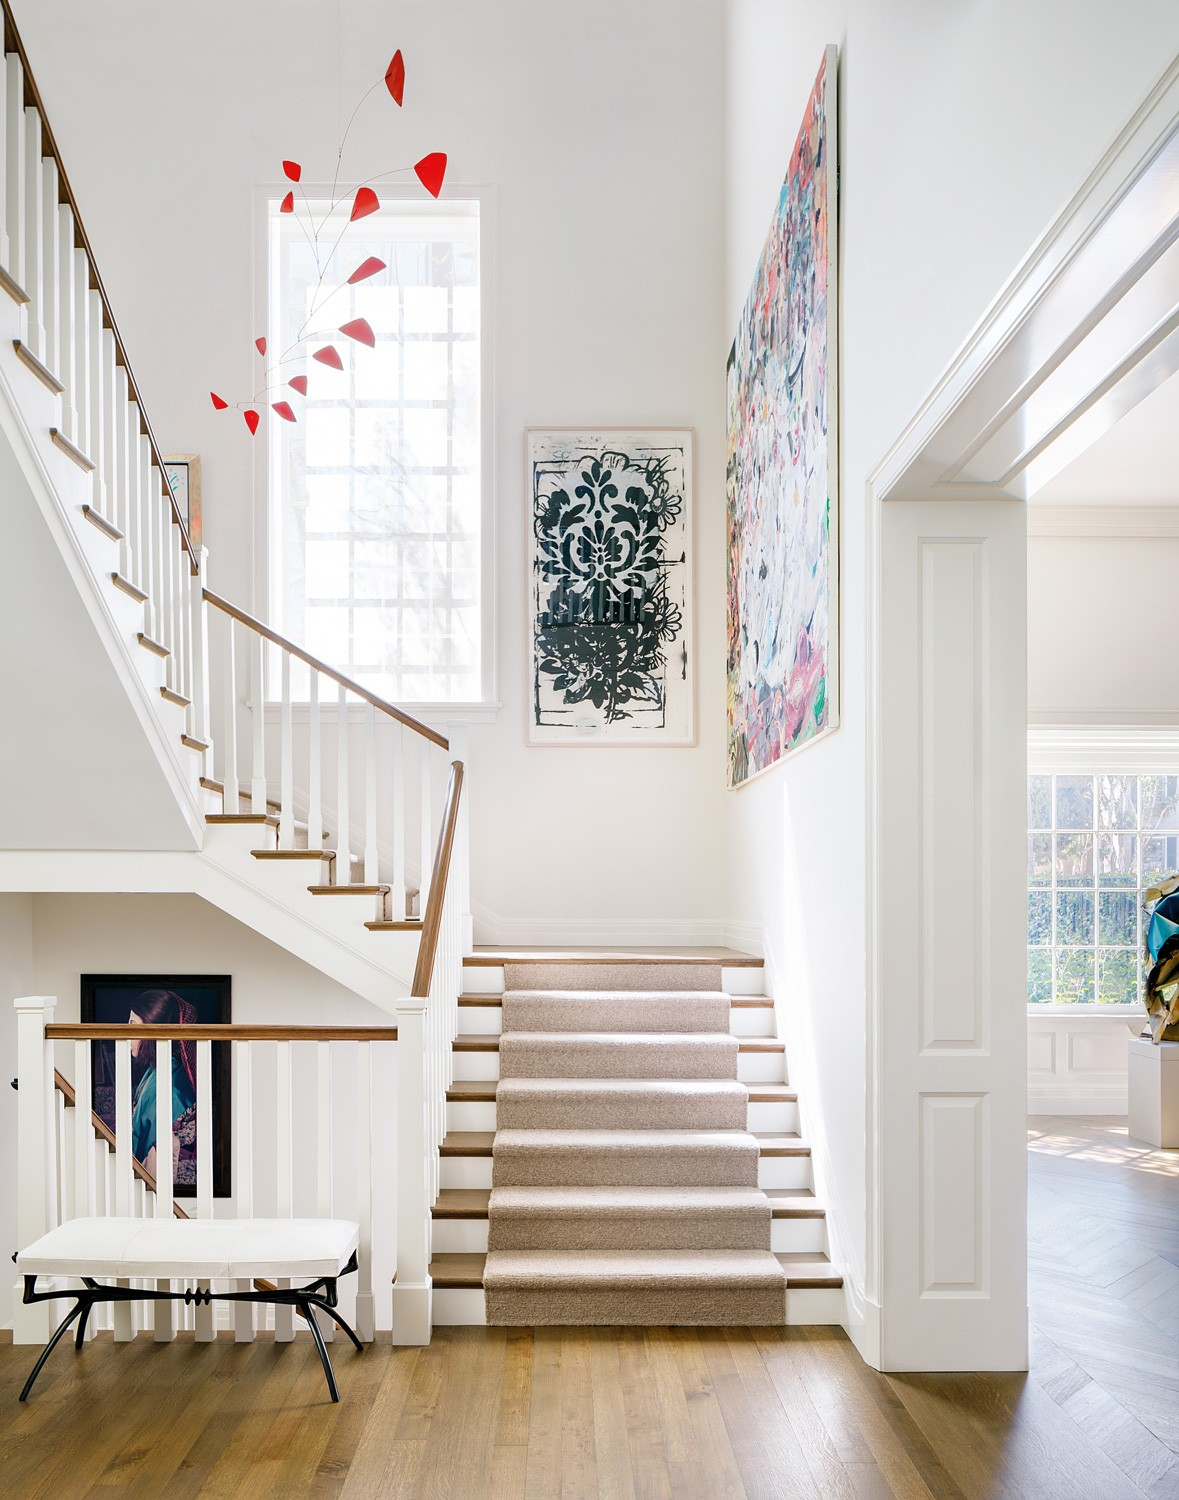 A Calder mobile suspends over a staircase in a La Jolla home designed by Madeline Stuart.